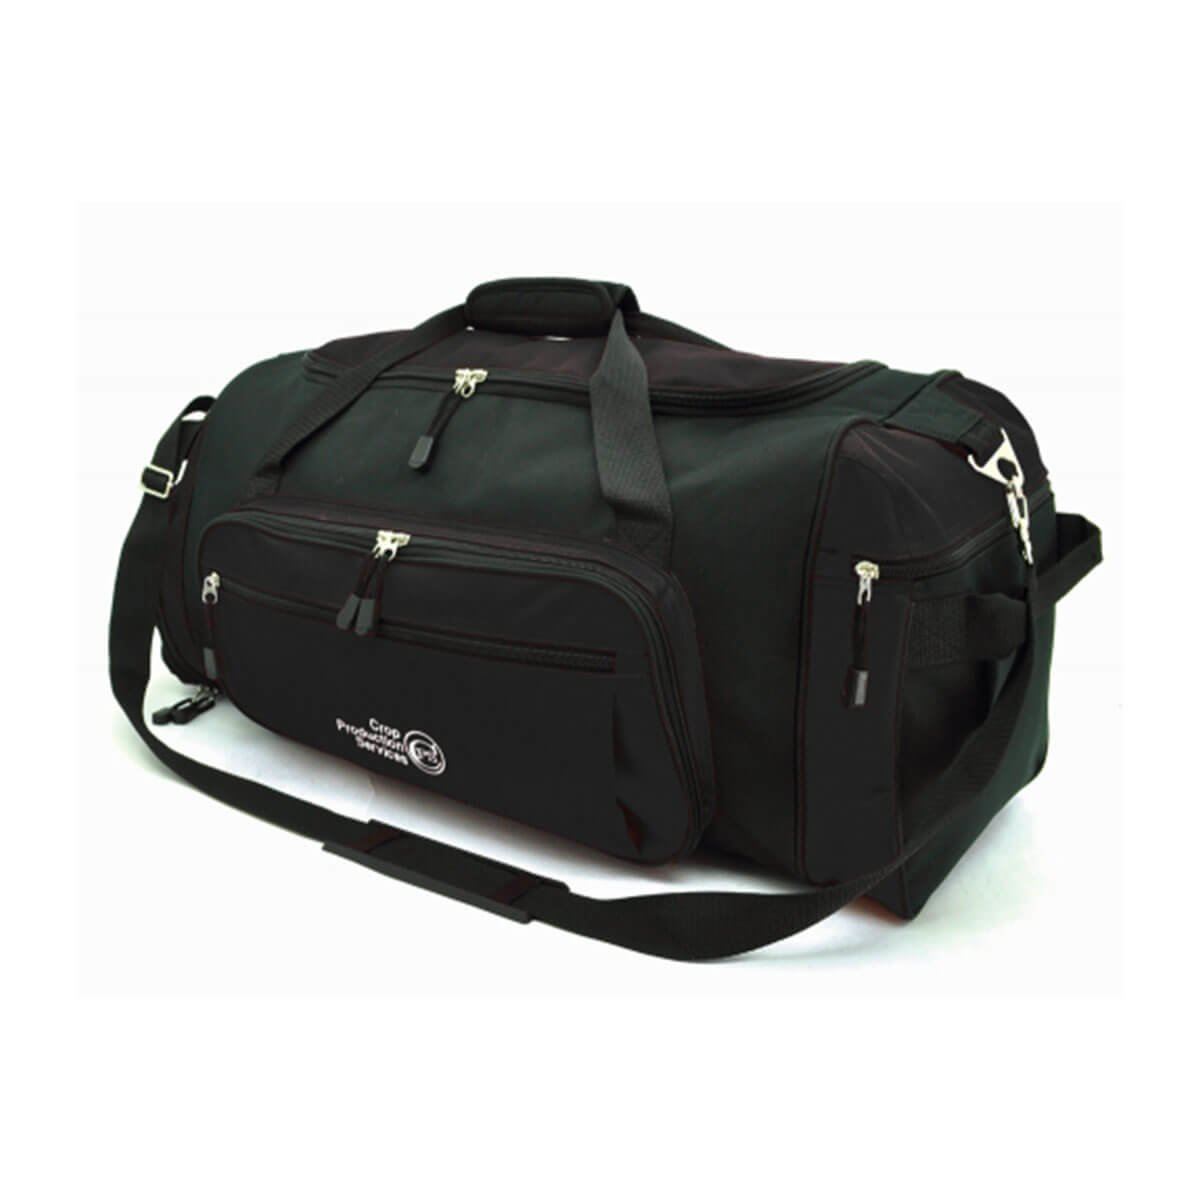 Soho Sports Bag-Black / Black